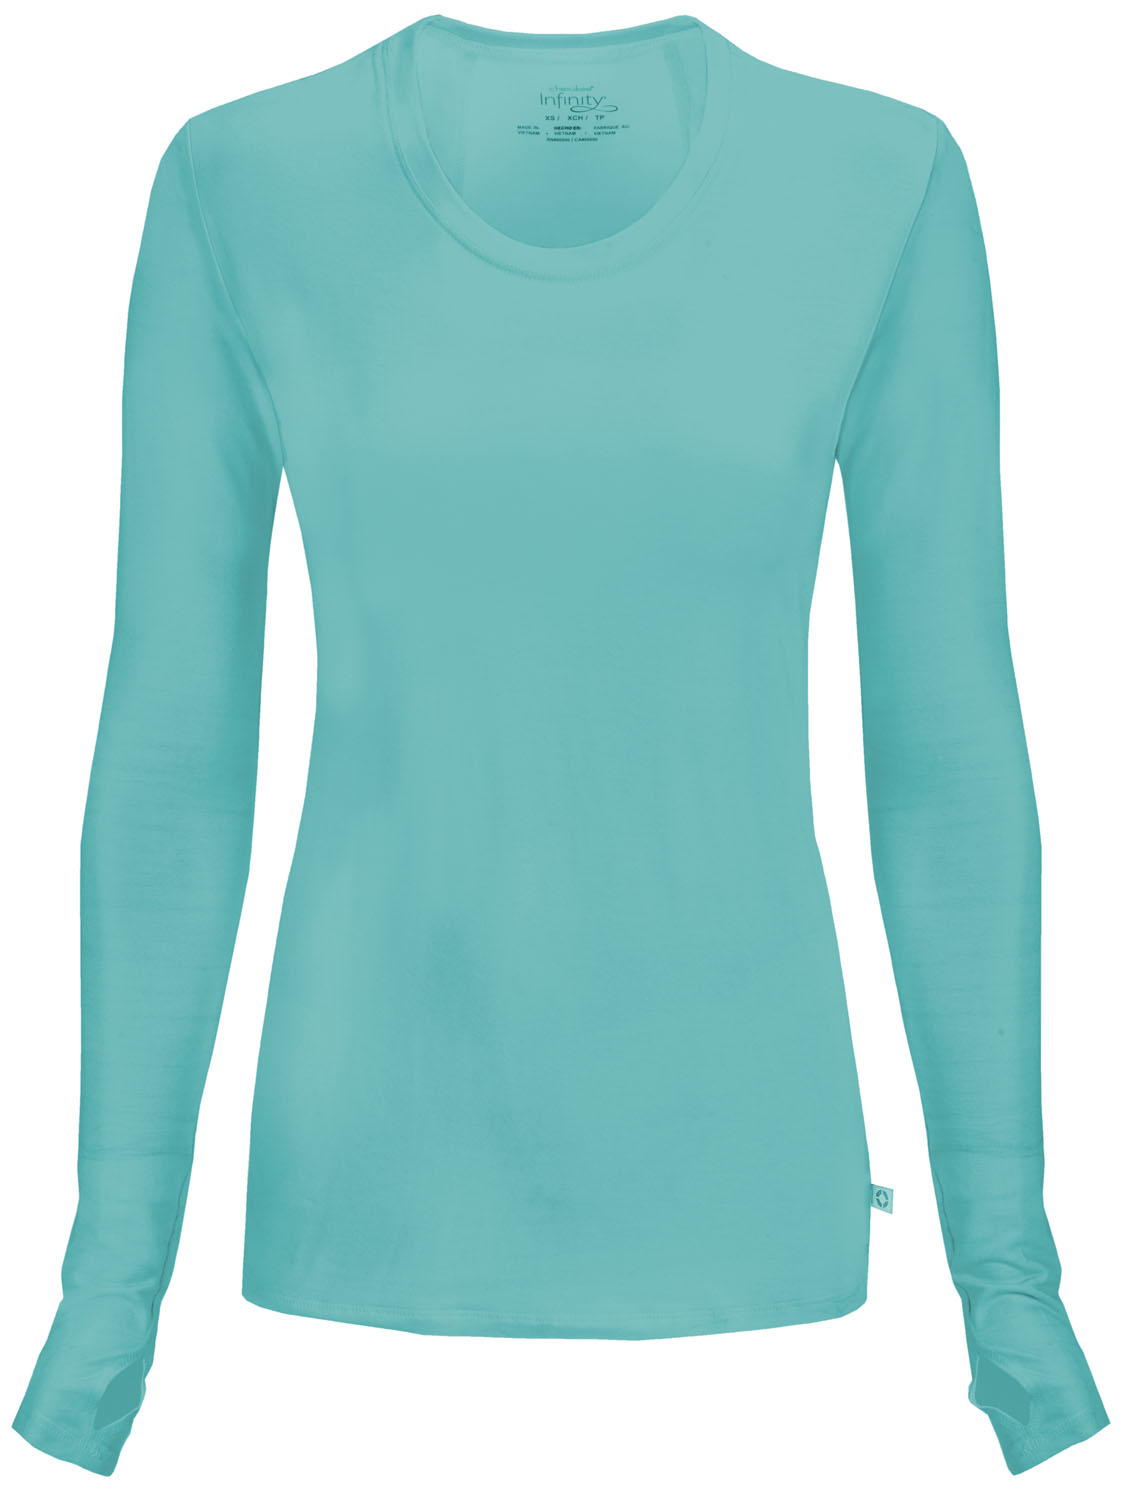 184b91f089d Infinity Long Sleeve Underscrub Knit Tee in Turquoise 2626A-TQCH ...